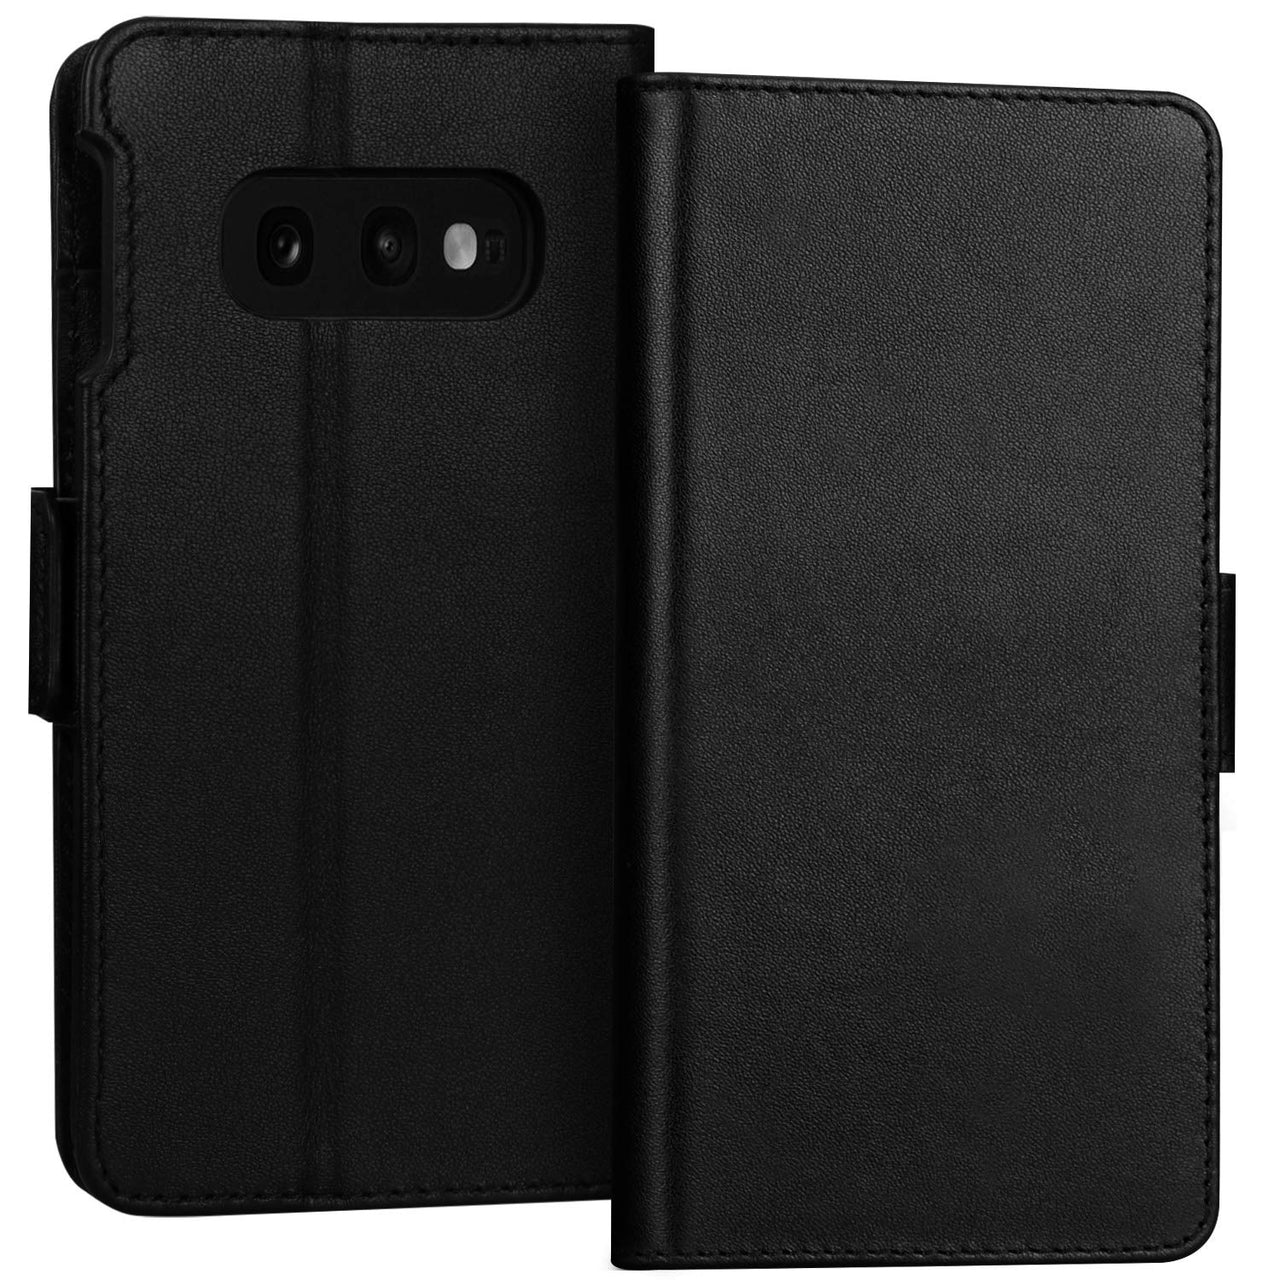 Handcrafted Wallet Case for Galaxy S10e 5.8'' | fyystore